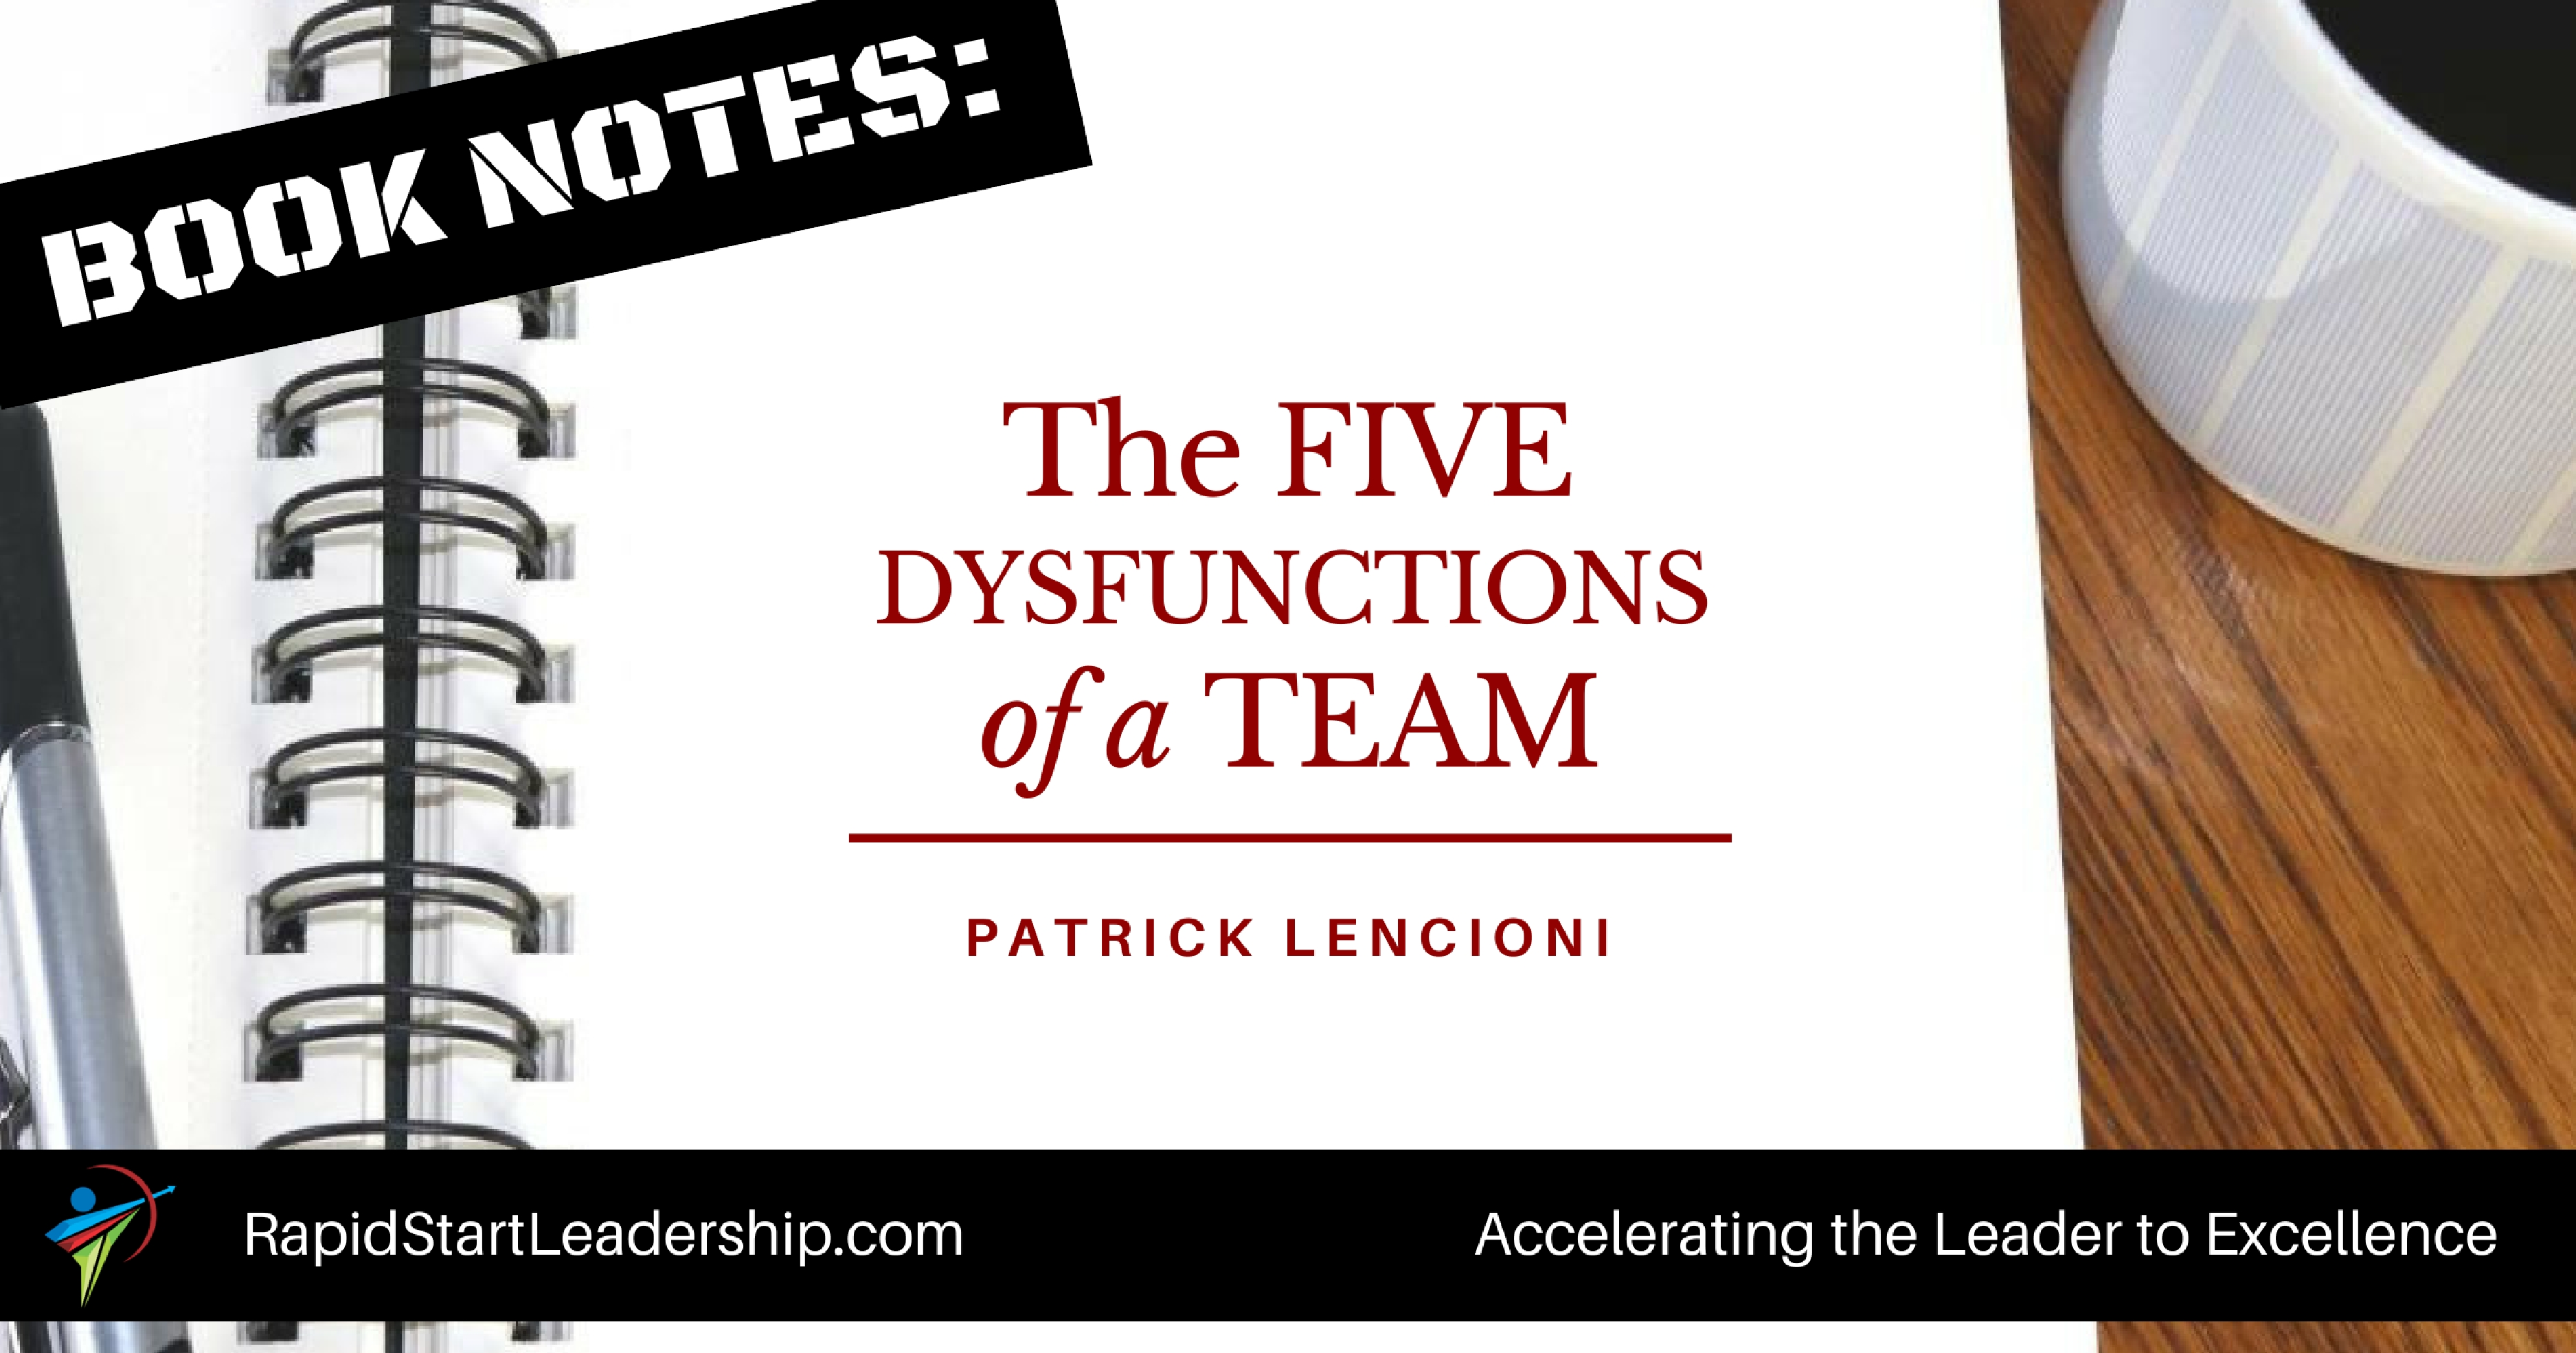 Book Notes - The Five Dysfunctions of a Team